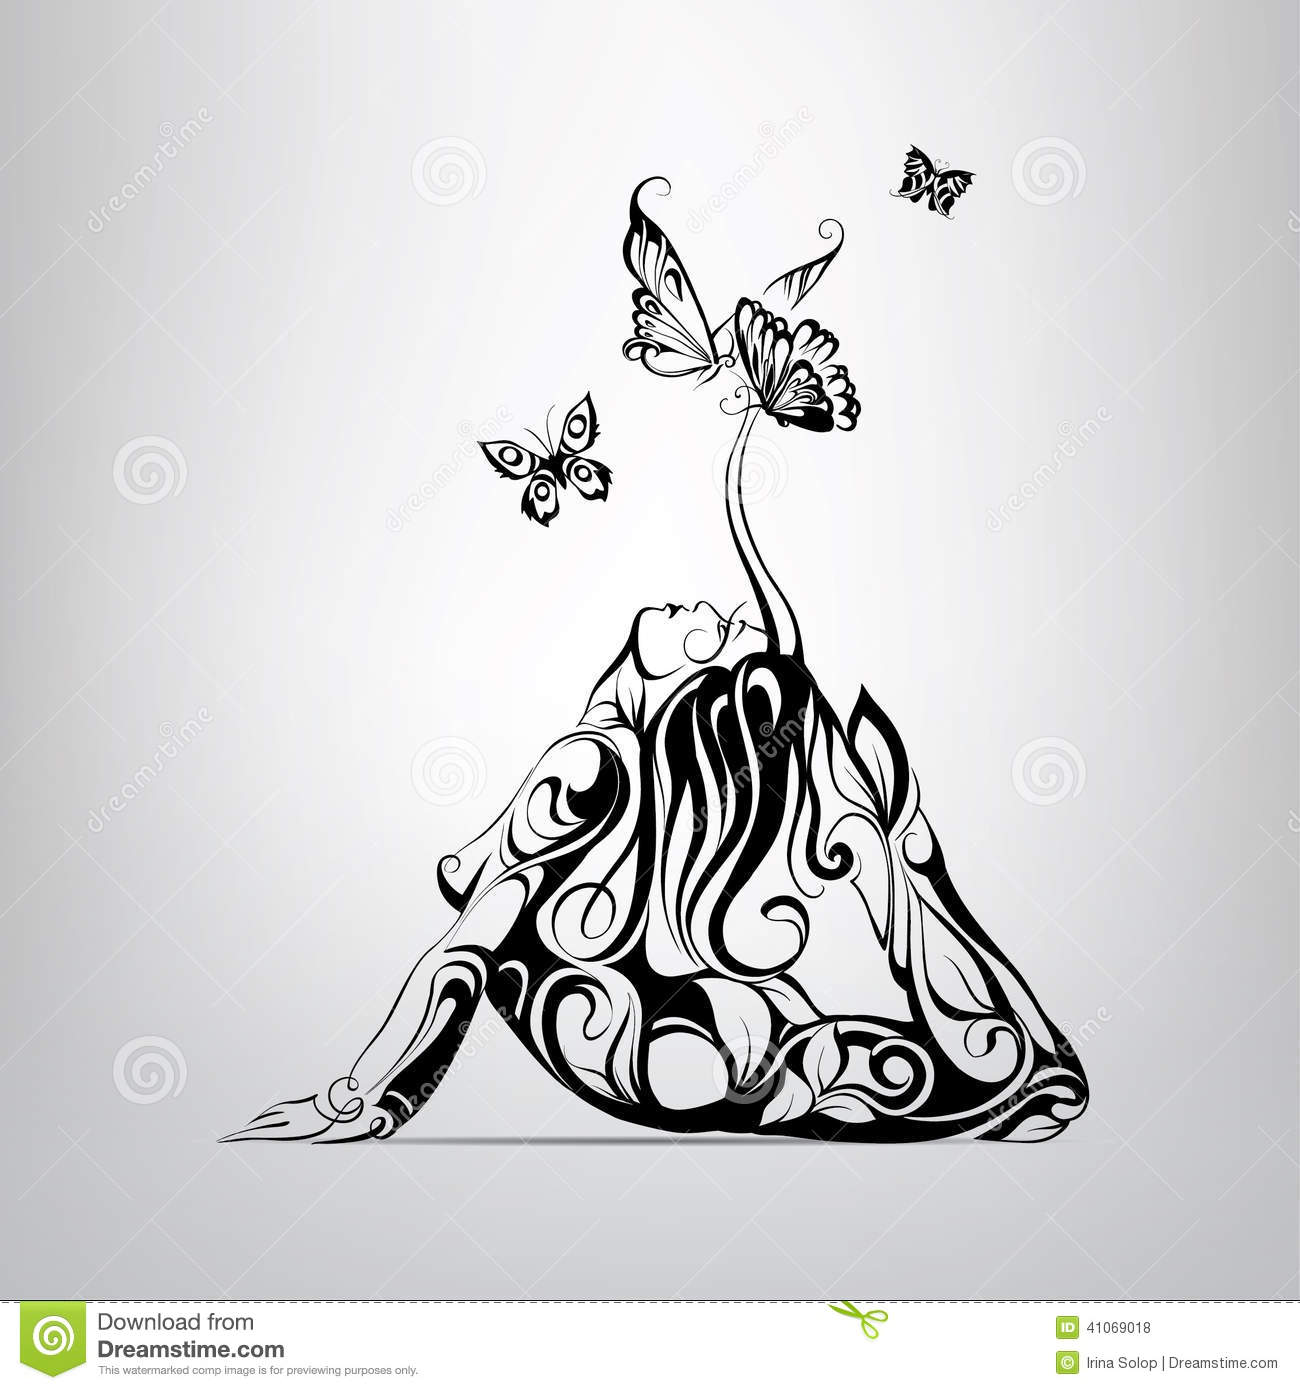 Girl surrounded by butterflies. vector illustration